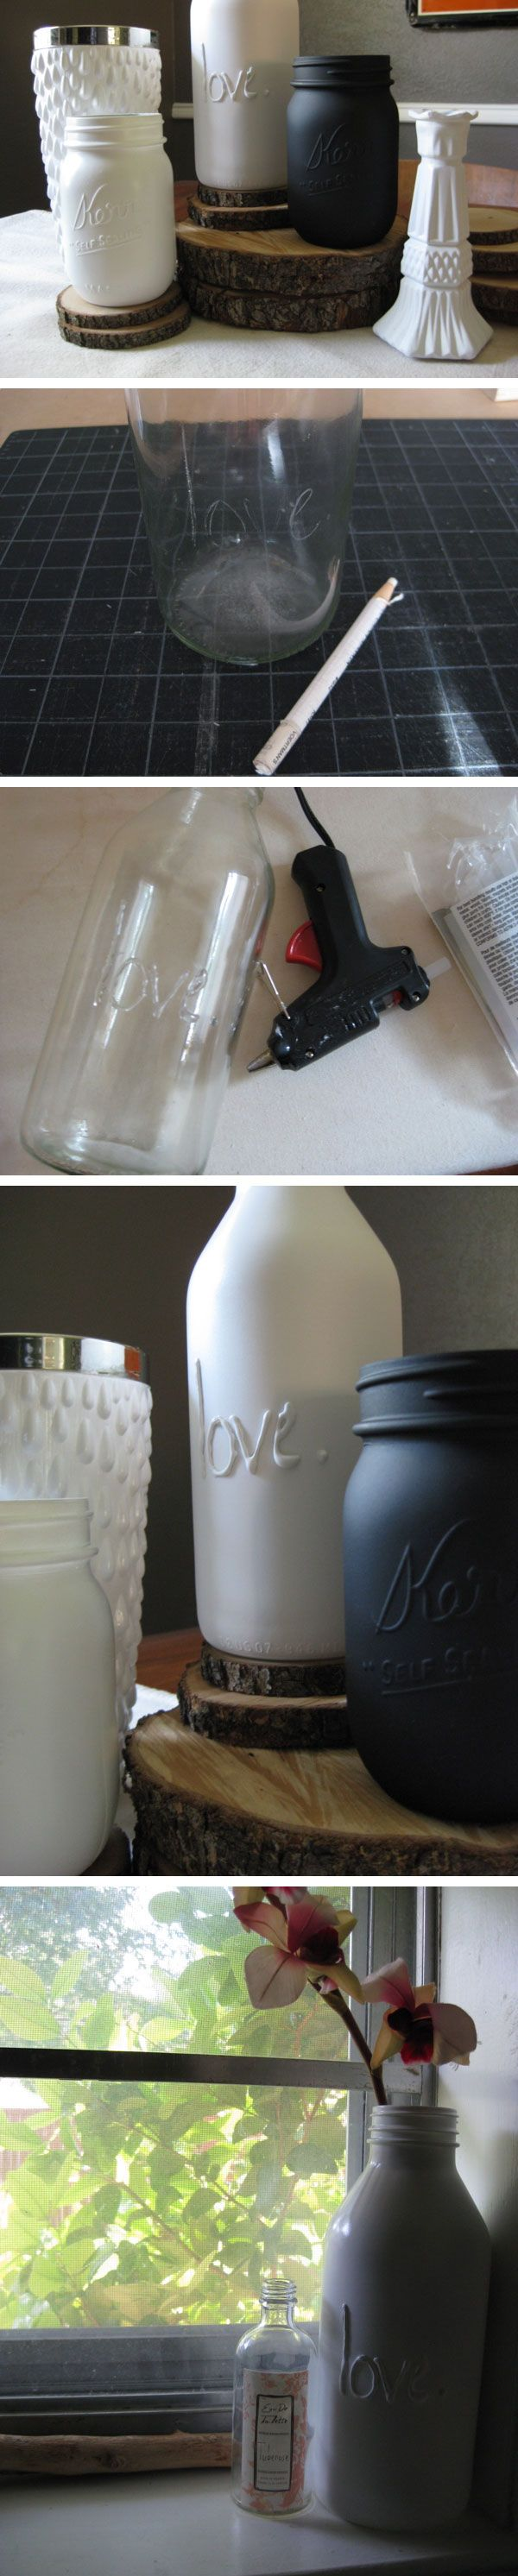 Reusing glass bottles jars | ecogreenlove